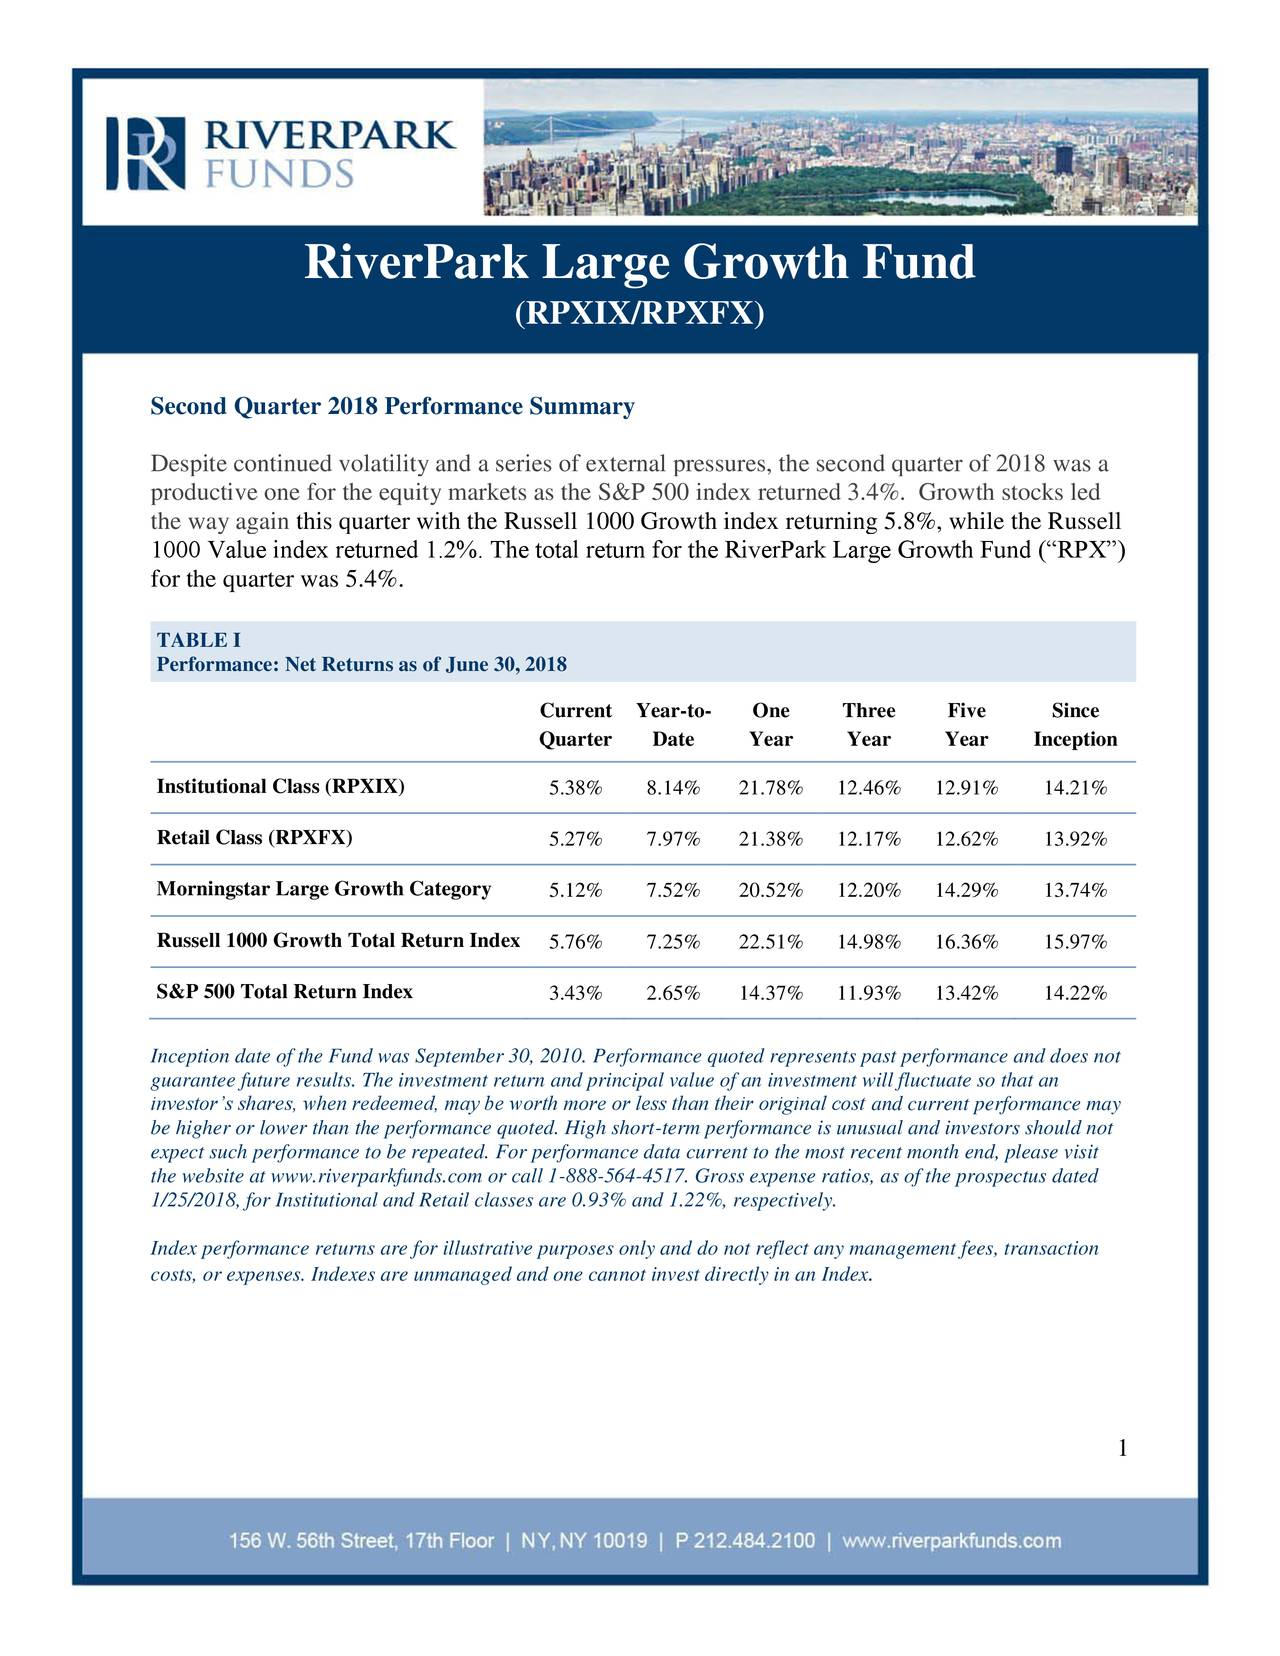 "(RPXIX/RPXFX) Second Quarter 2018 Performance Summary Despite continued volatility and a series of external pressures, the second quarter of 2018 was a productive one for the equity markets as the S&P 500 index returned 3.4%. Growth stocks led the way again this quarter with the Russell 1000 Growth index returning 5.8%, while the Russell 1000 Value index returned 1.2%. The total return for the RiverPark Large Growth Fund (""RPX"") for the quarter was 5.4%. TABLE I Performance: Net Returns as of June 30, 2018 Current Year-to- One Three Five Since Quarter Date Year Year Year Inception Institutional Class (RPXIX) 5.38% 8.14% 21.78% 12.46% 12.91% 14.21% Retail Class (RPXFX) 5.27% 7.97% 21.38% 12.17% 12.62% 13.92% Morningstar Large Growth Category 5.12% 7.52% 20.52% 12.20% 14.29% 13.74% Russell 1000 Growth Total Return Index5.76% 7.25% 22.51% 14.98% 16.36% 15.97% S&P 500 Total Return Index 3.43% 2.65% 14.37% 11.93% 13.42% 14.22% Inception date of the Fund was September 30, 2010. Performance quoted represents past performance and does not guarantee future results. The investment return and principal value of an investment will fluctuate so that an investor's shares, when redeemed, may be worth more or less than their original cost and current performance may be higher or lower than the performance quoted. High short-term performance is unusual and investors should not expect such performance to be repeated. For performance data current to the most recent month end, please visit the website at www.riverparkfunds.com or call 1-888-564-4517. Gross expense ratios, as of the prospectus dated 1/25/2018, for Institutional and Retail classes are 0.93% and 1.22%, respectively. Index performance returns are for illustrative purposes only and do not reflect any management fees, transaction costs, or expenses. Indexes are unmanaged and one cannot invest directl. in an Index 1"